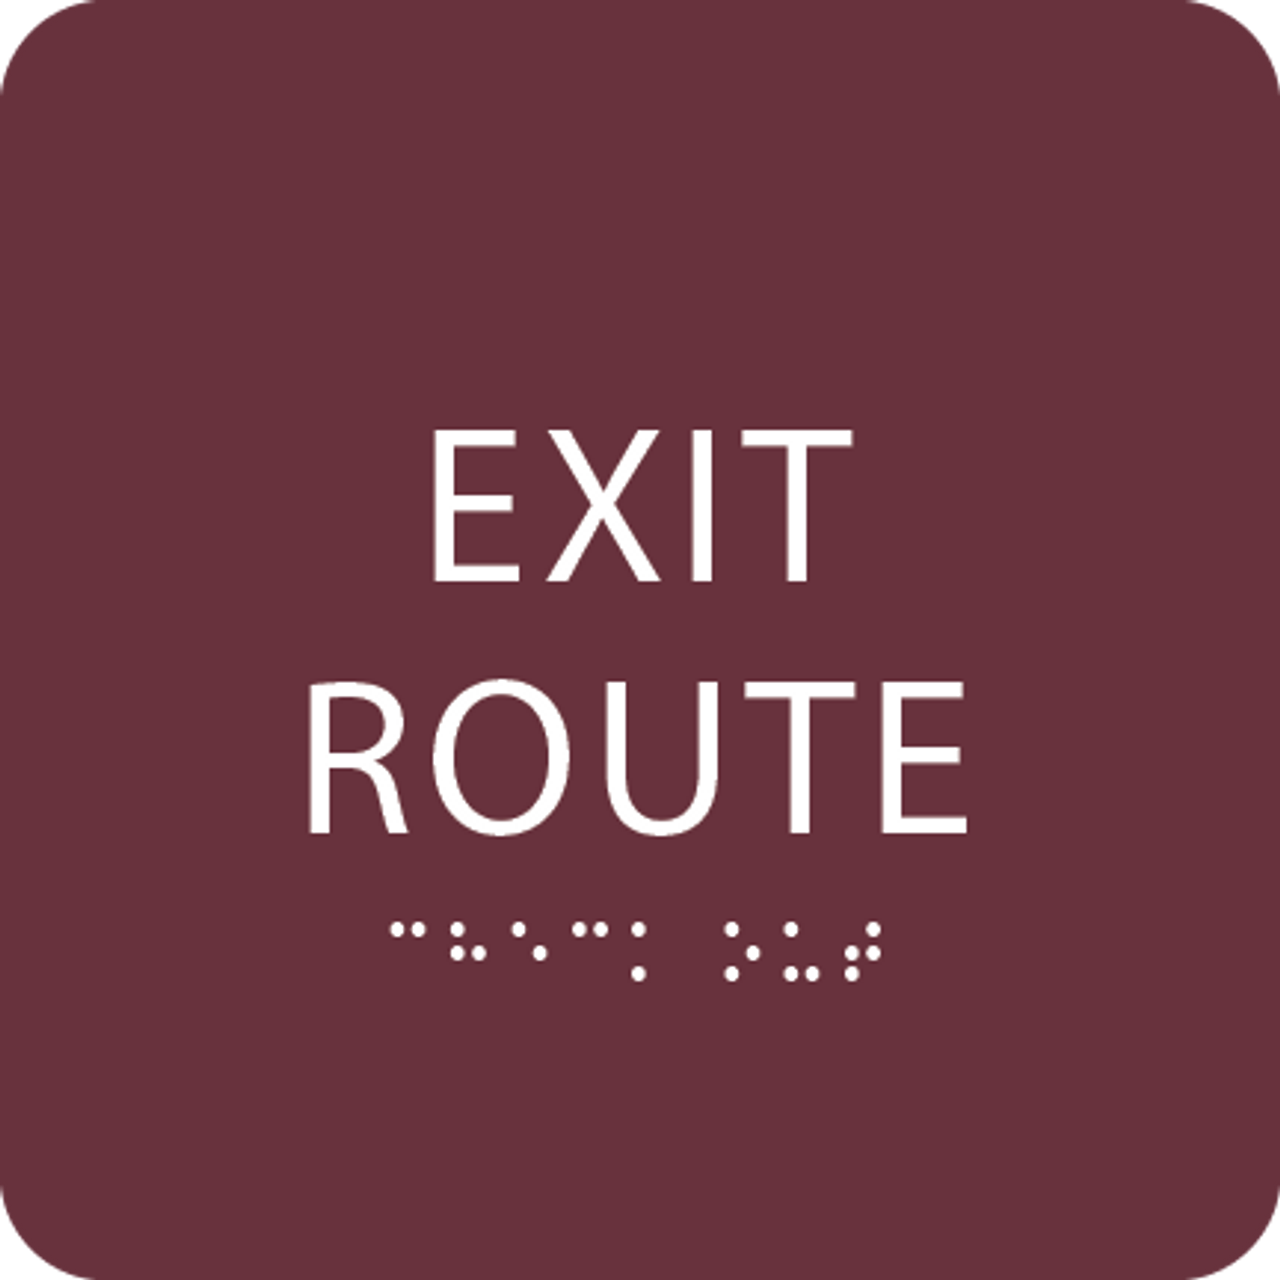 Burgundy Tactile Exit Route Sign